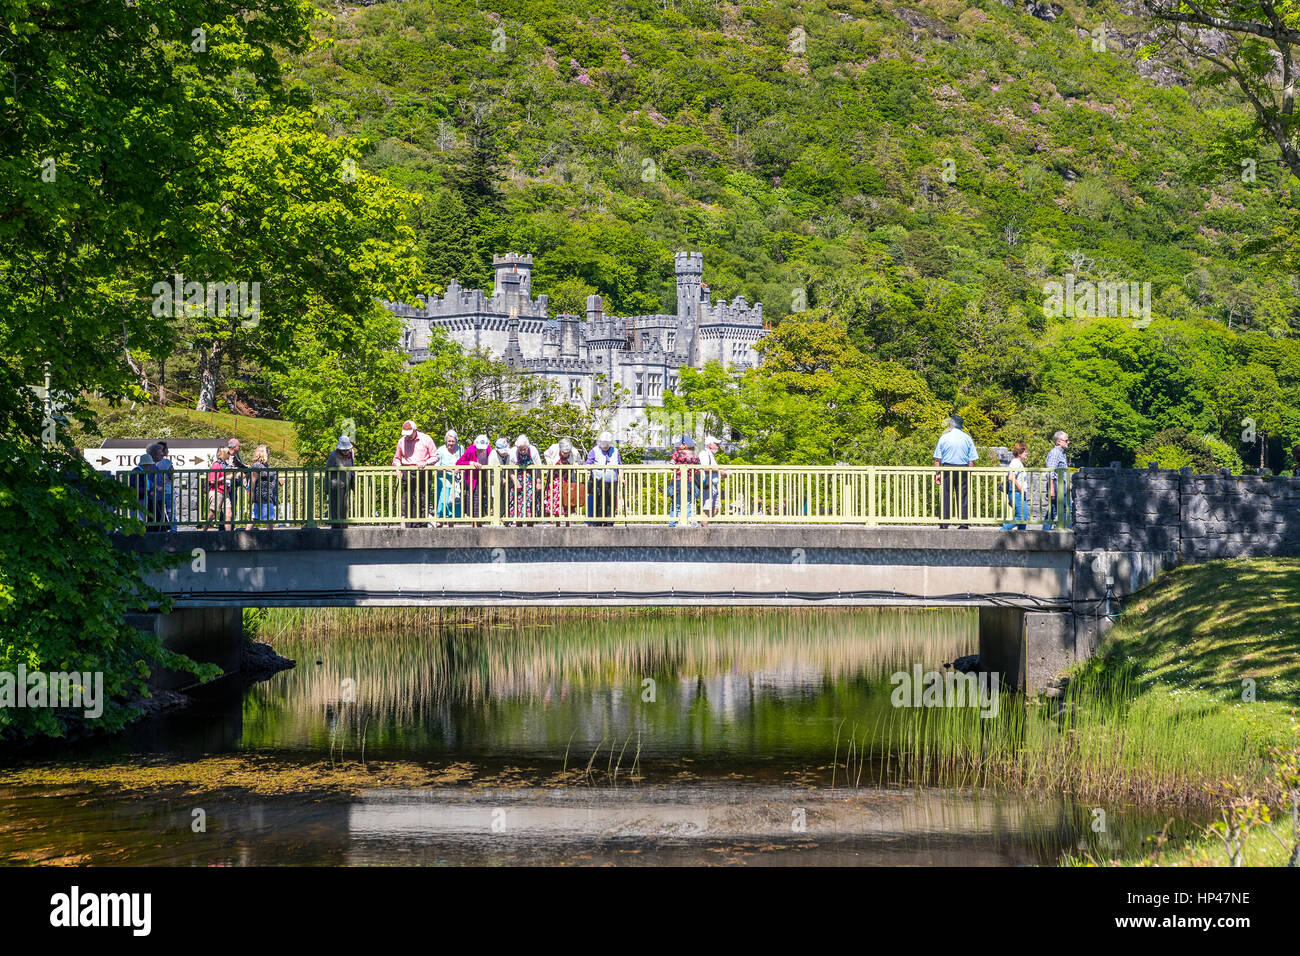 Kylemore Abbey a Benedictine monastery founded in 1920 on the grounds of Kylemore Castle, Connemara, County Galway, Stock Photo